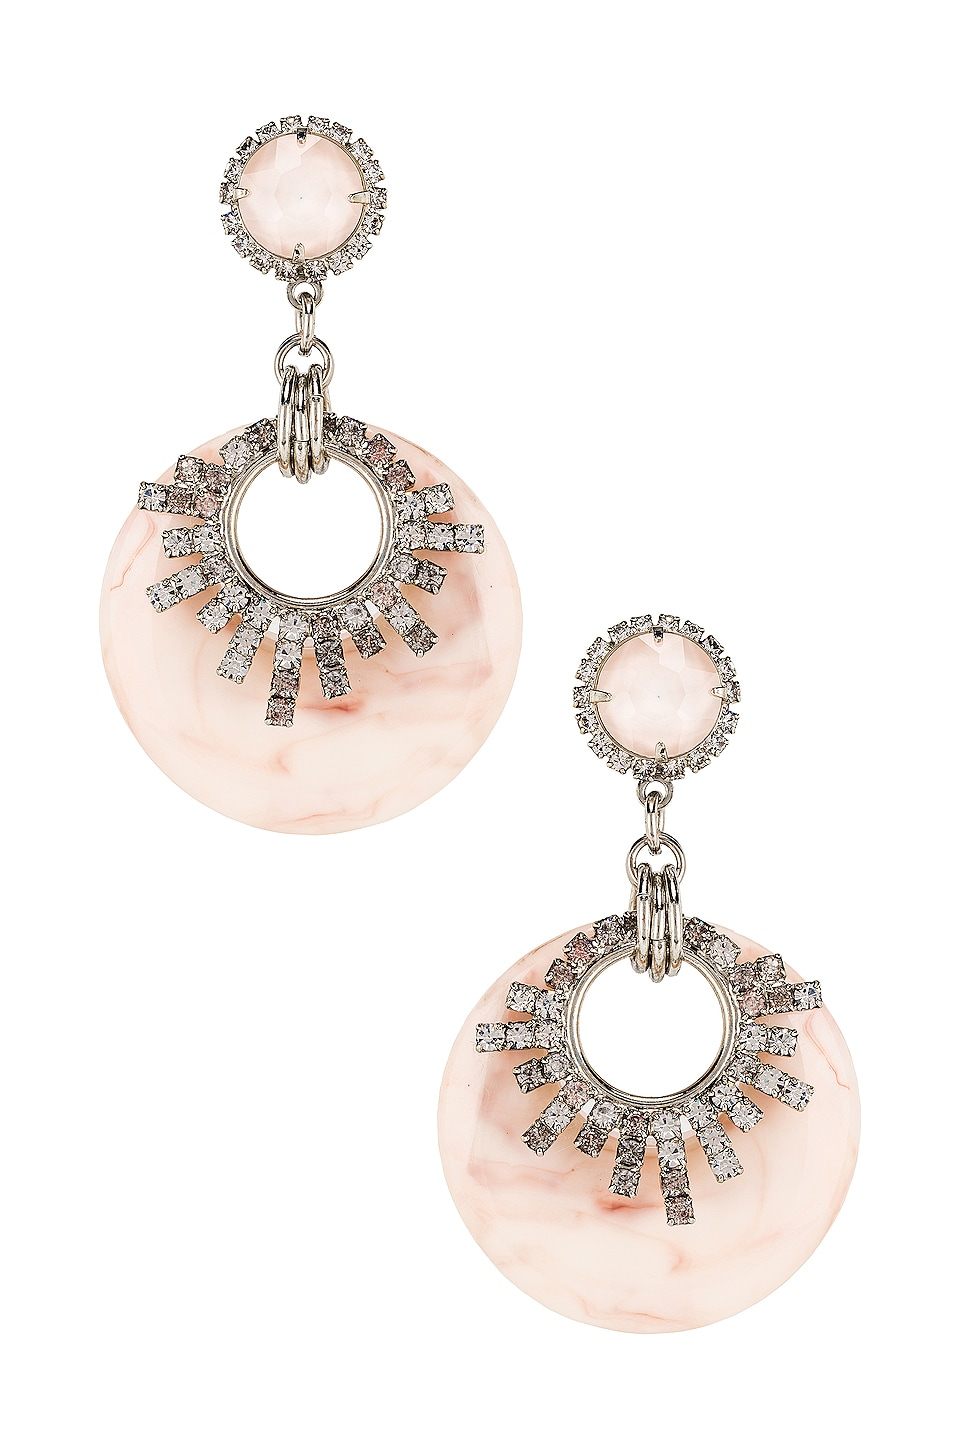 Elizabeth Cole Statement Earrings in Pink Marble